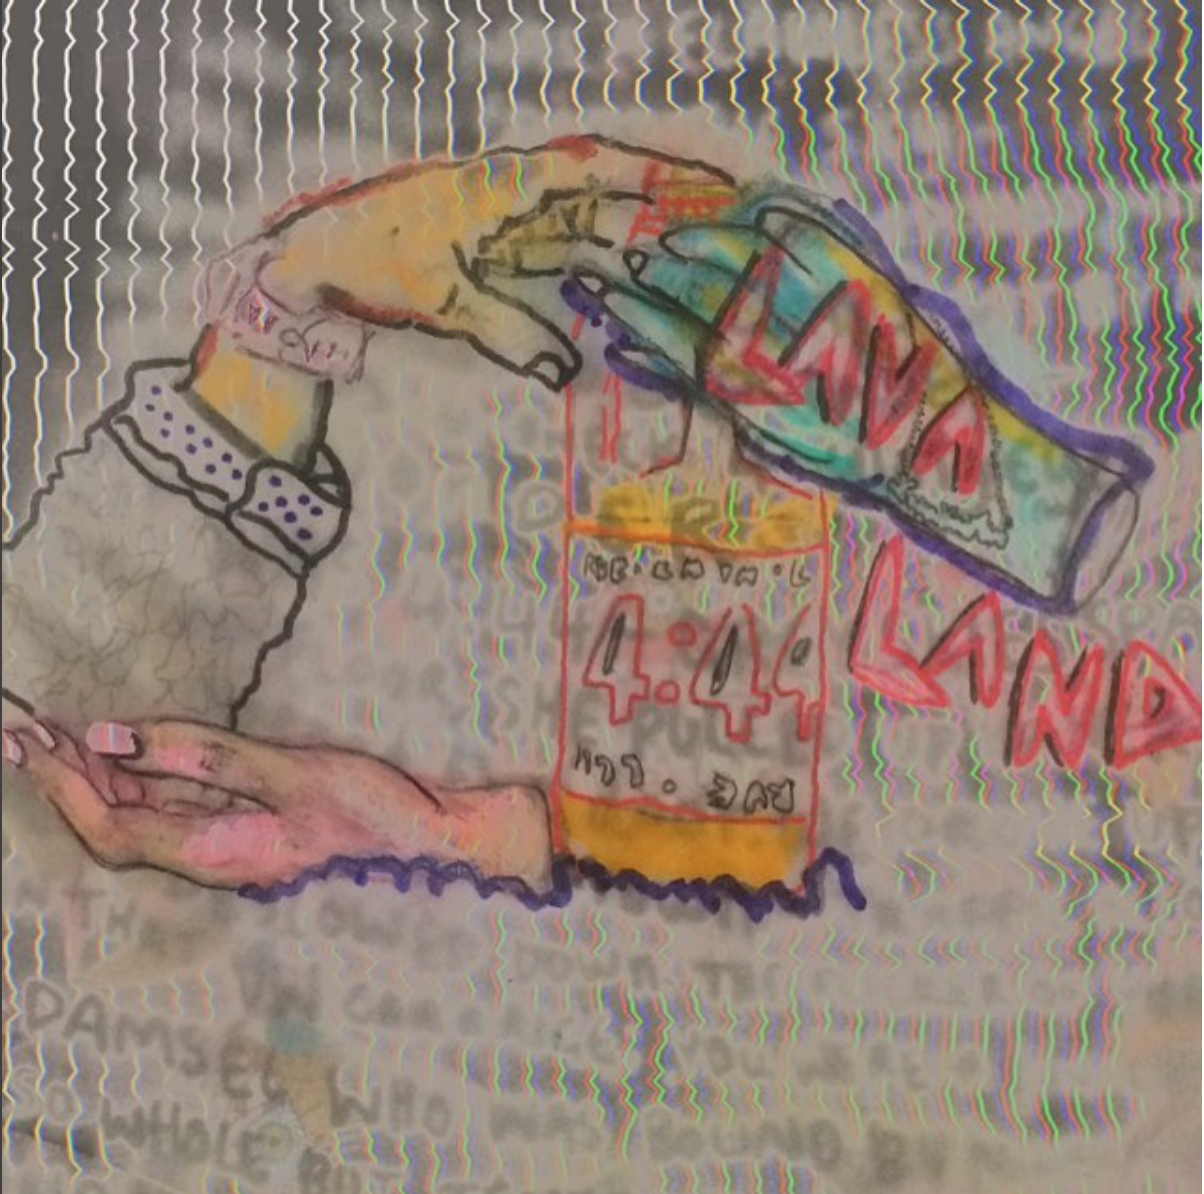 INITIAL LAVALAND PART 1 COVER ART